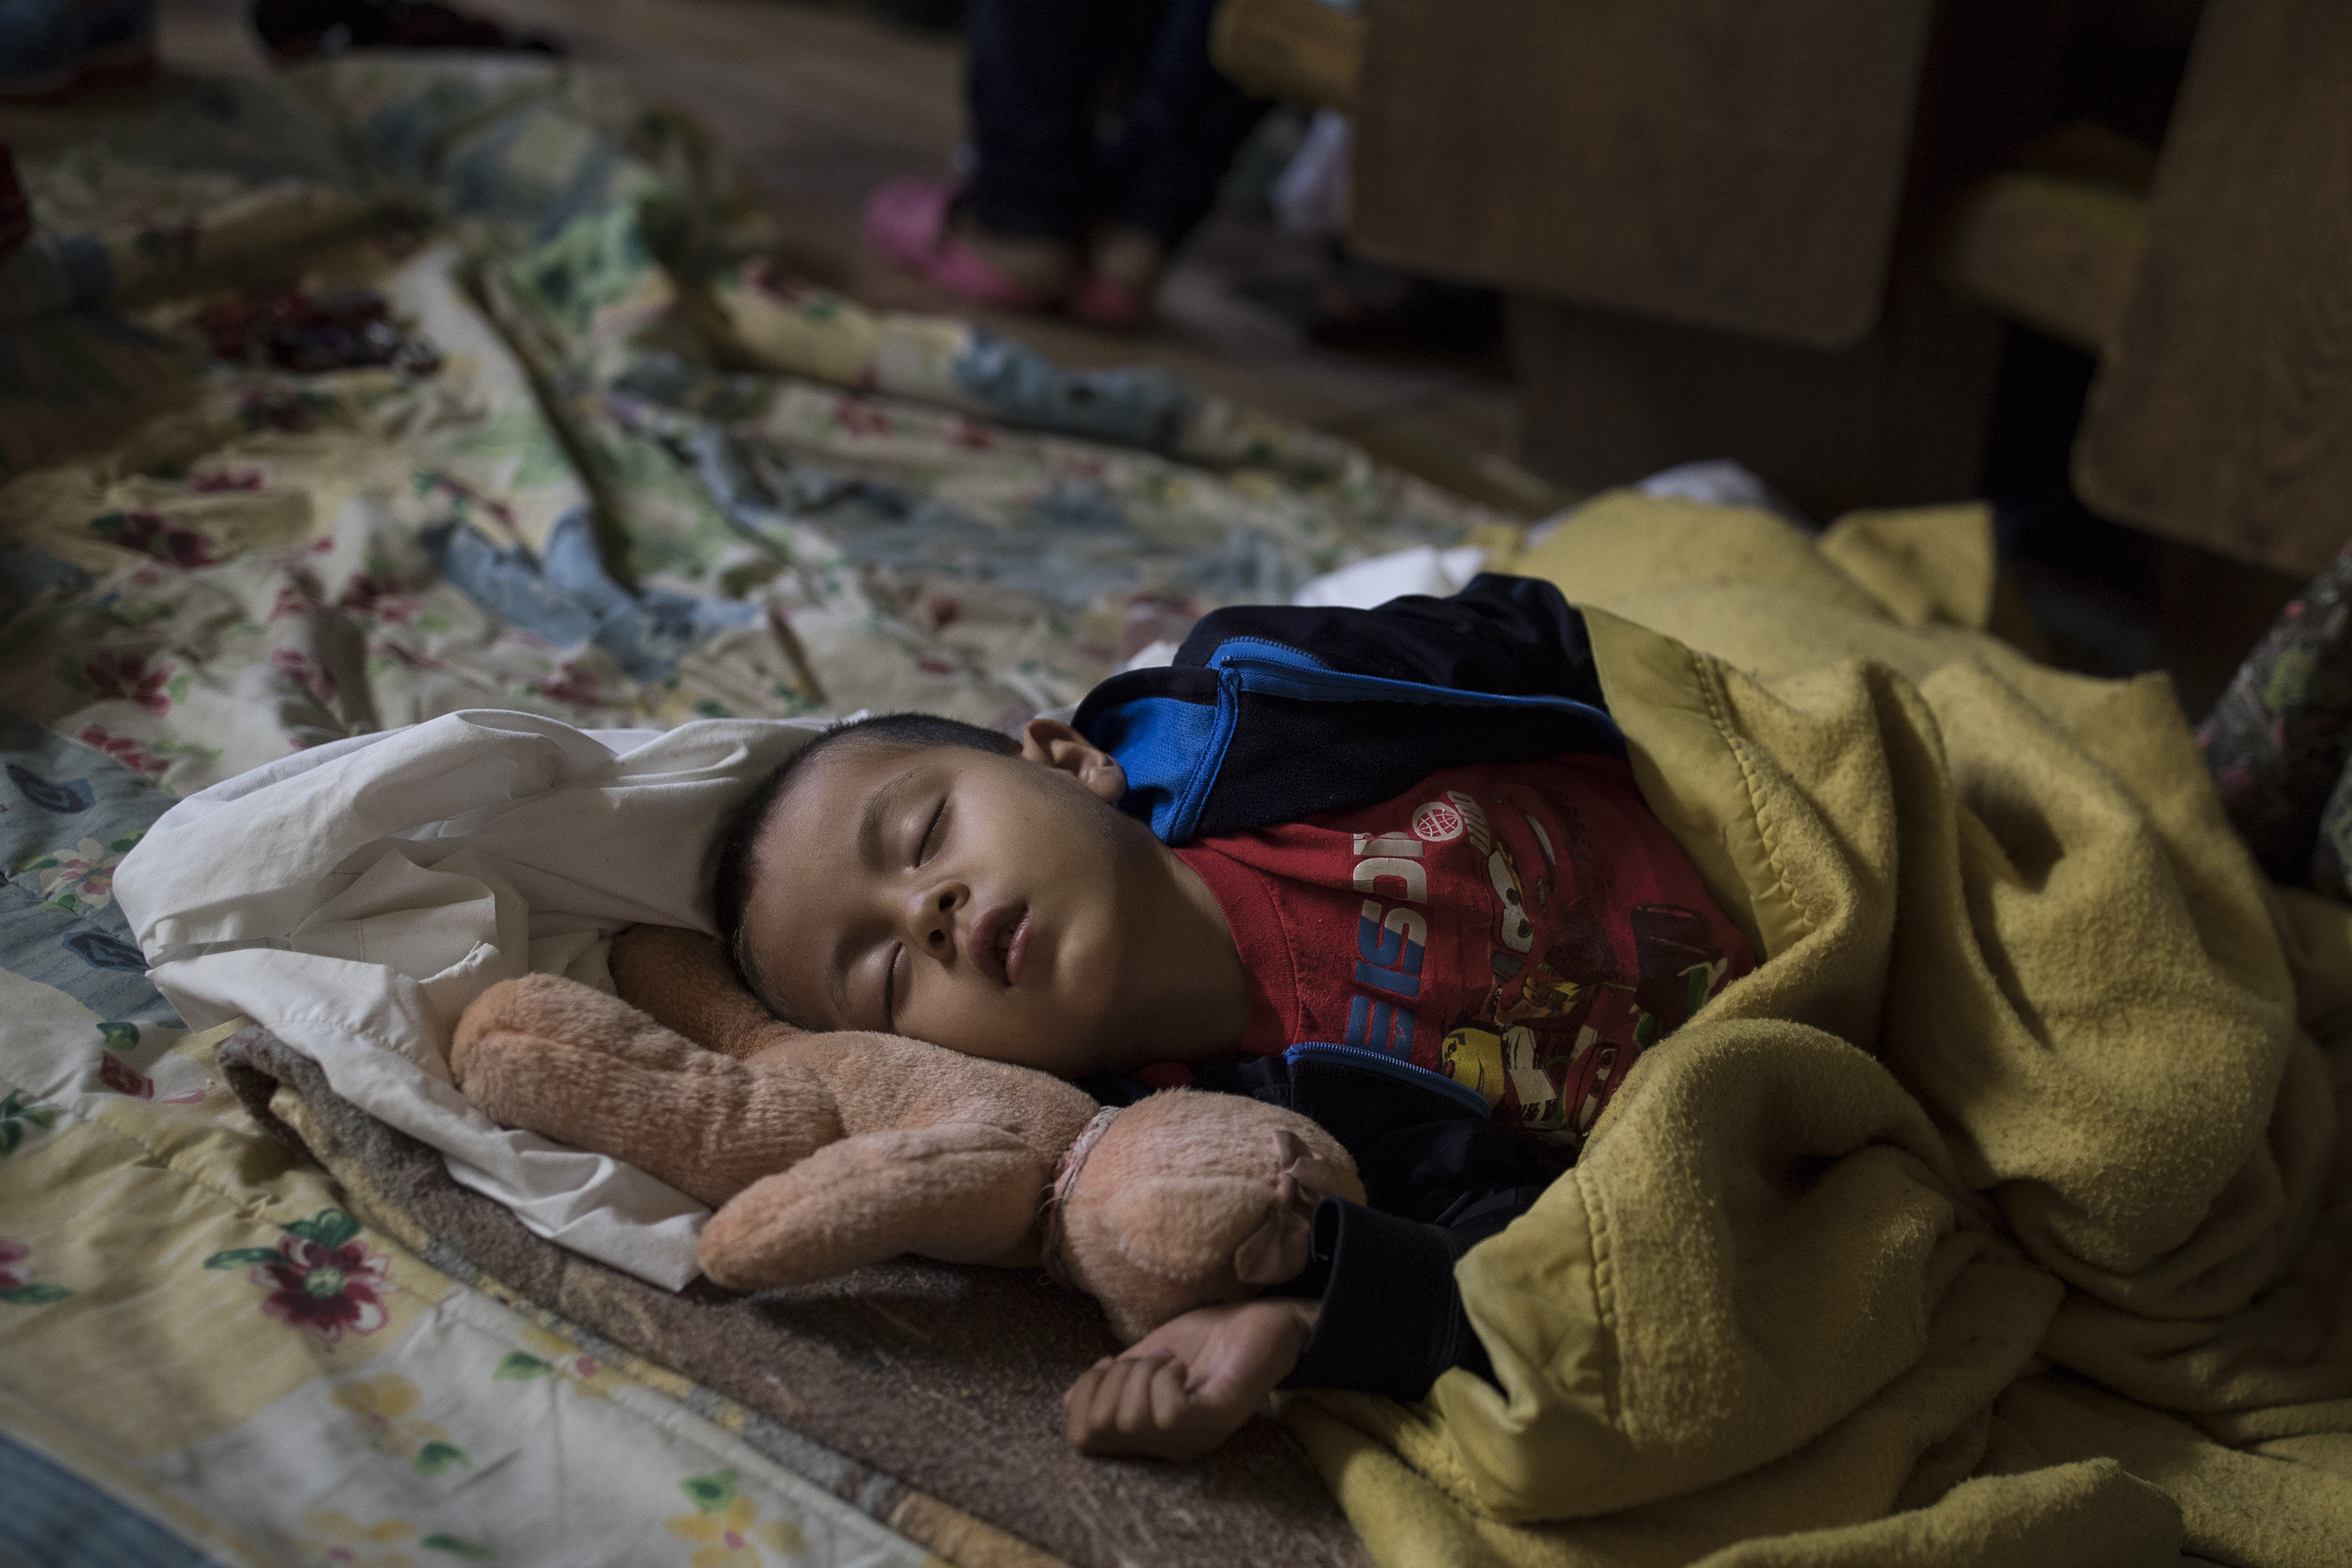 A Central American child who is traveling with a caravan of migrants sleeps at a shelter in Tijuana, Mexico,  April 29, 2018.